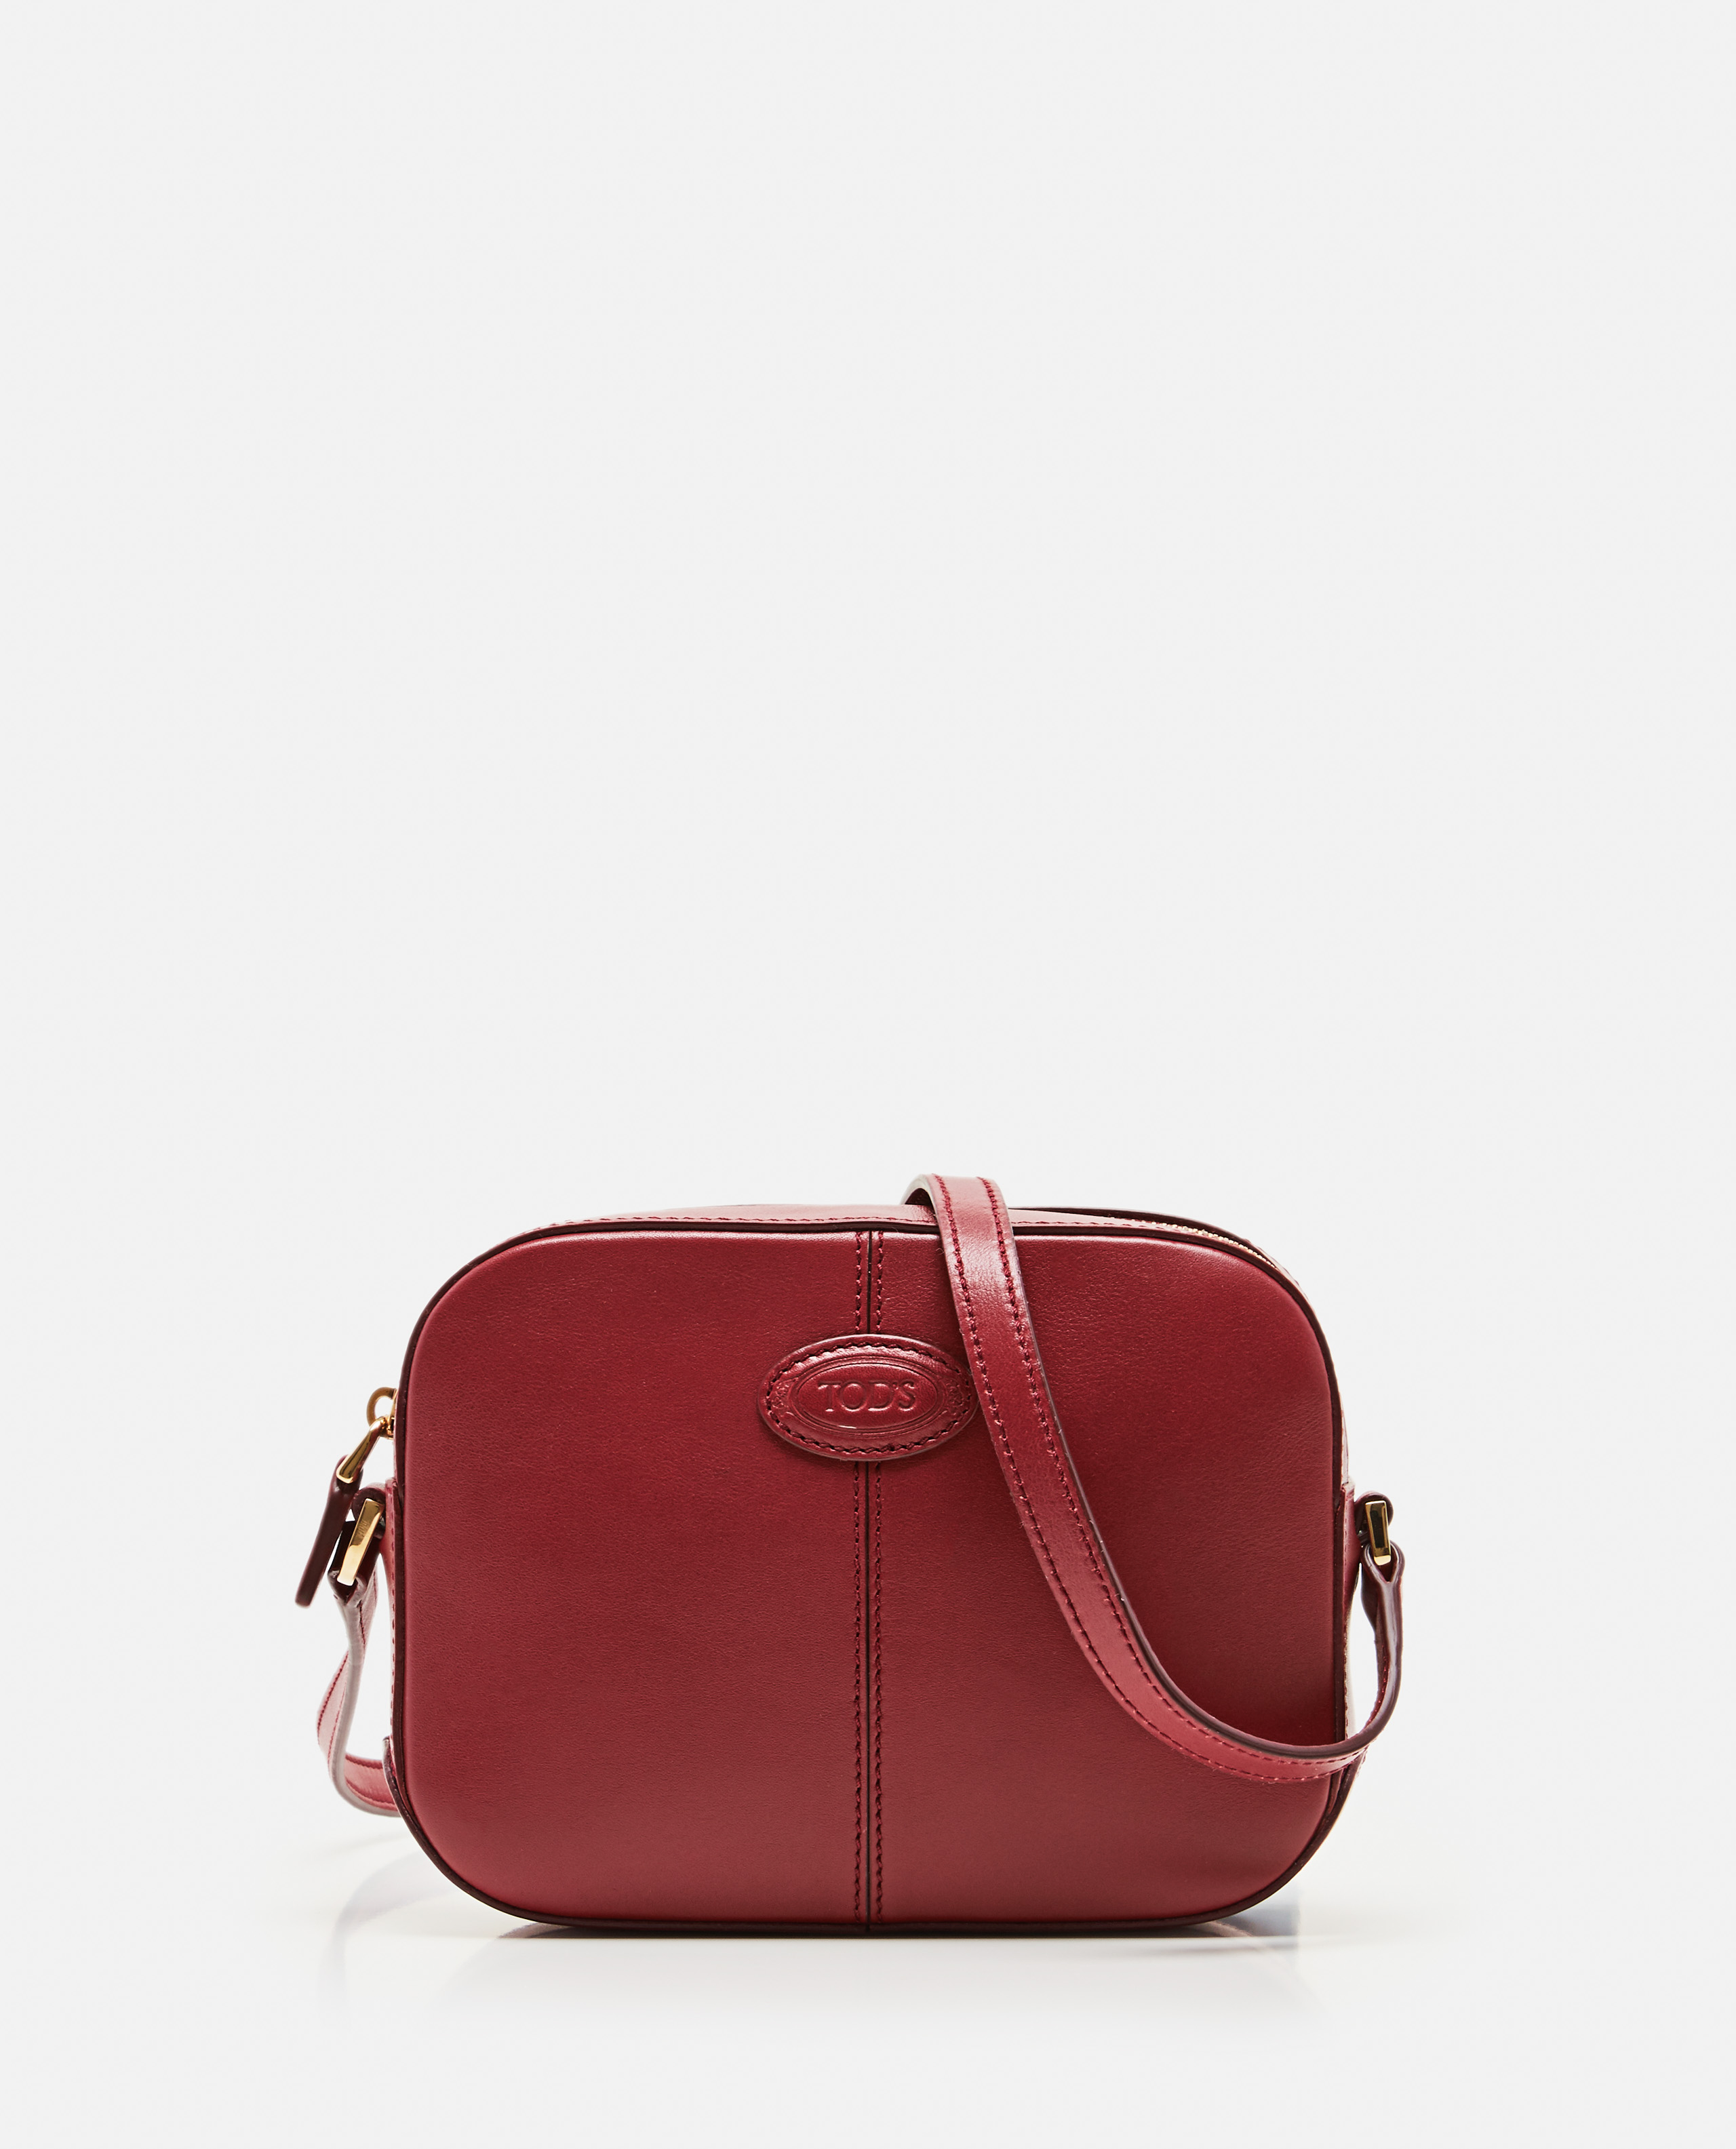 Tods mini bag